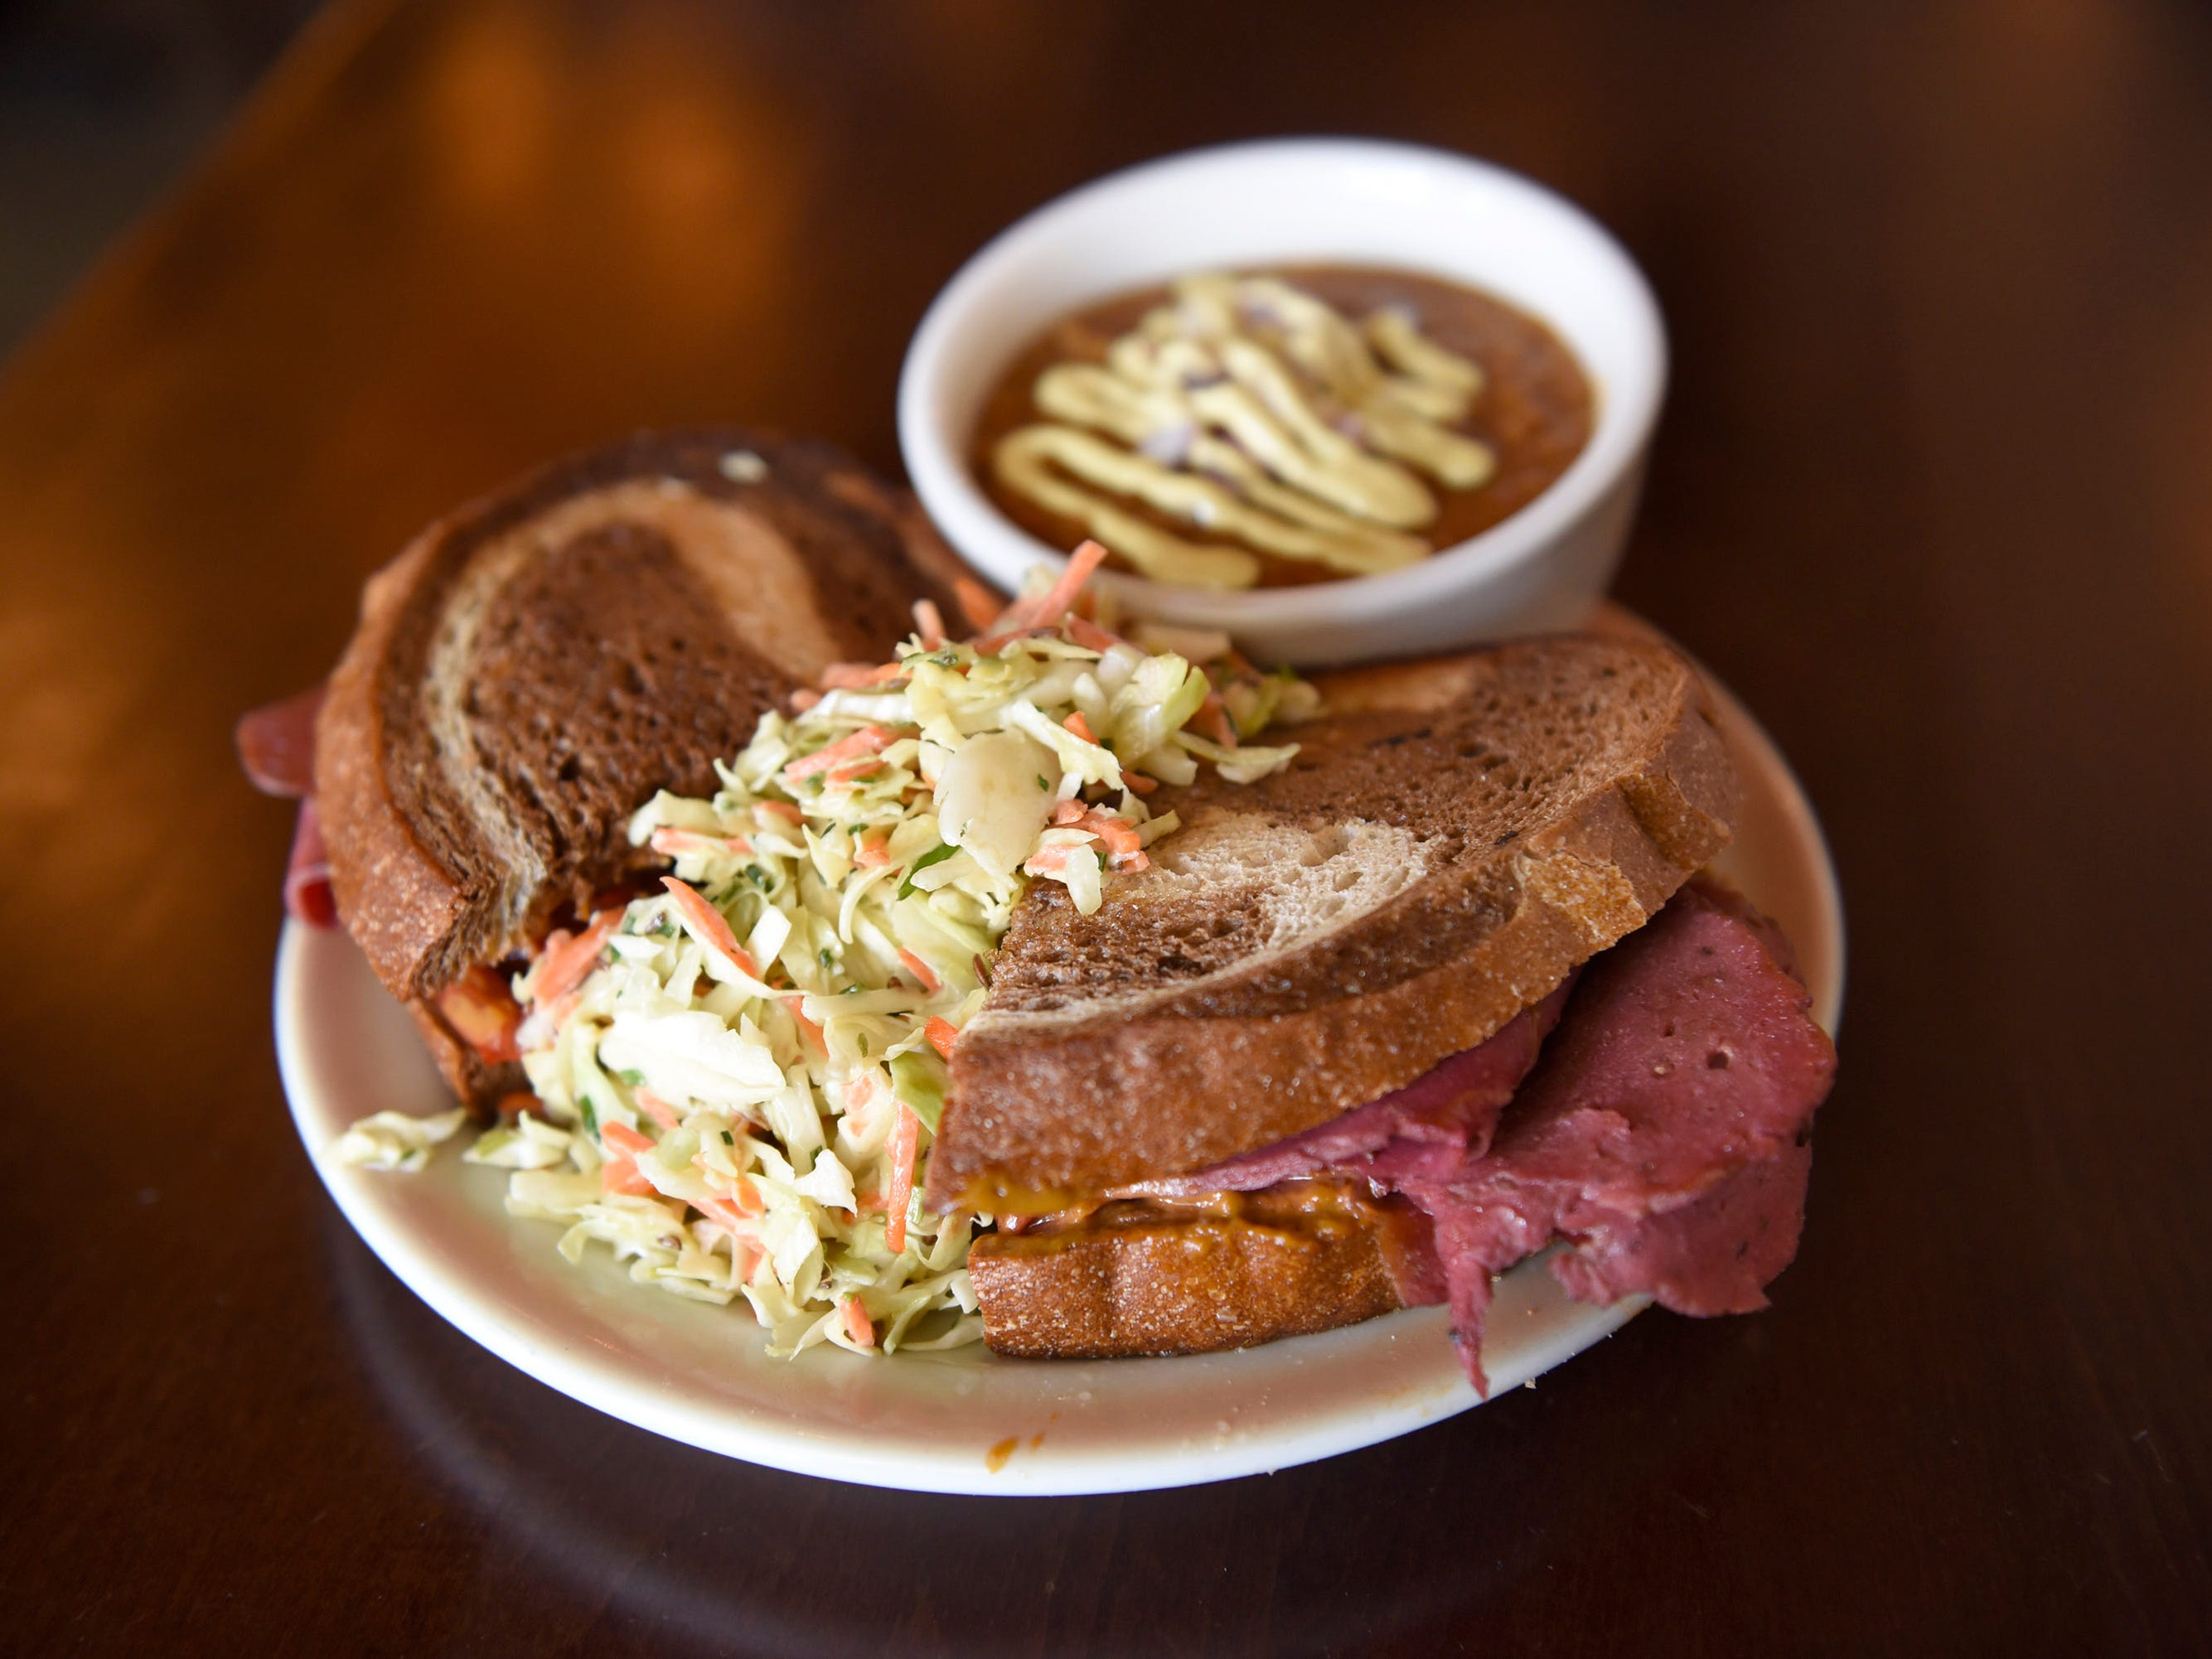 The Chive Reuben is made with corned beef seitan, cheese sauce, red peppers, caramelized onions, dill relish sauce, deli slaw and Detroit marble rye.